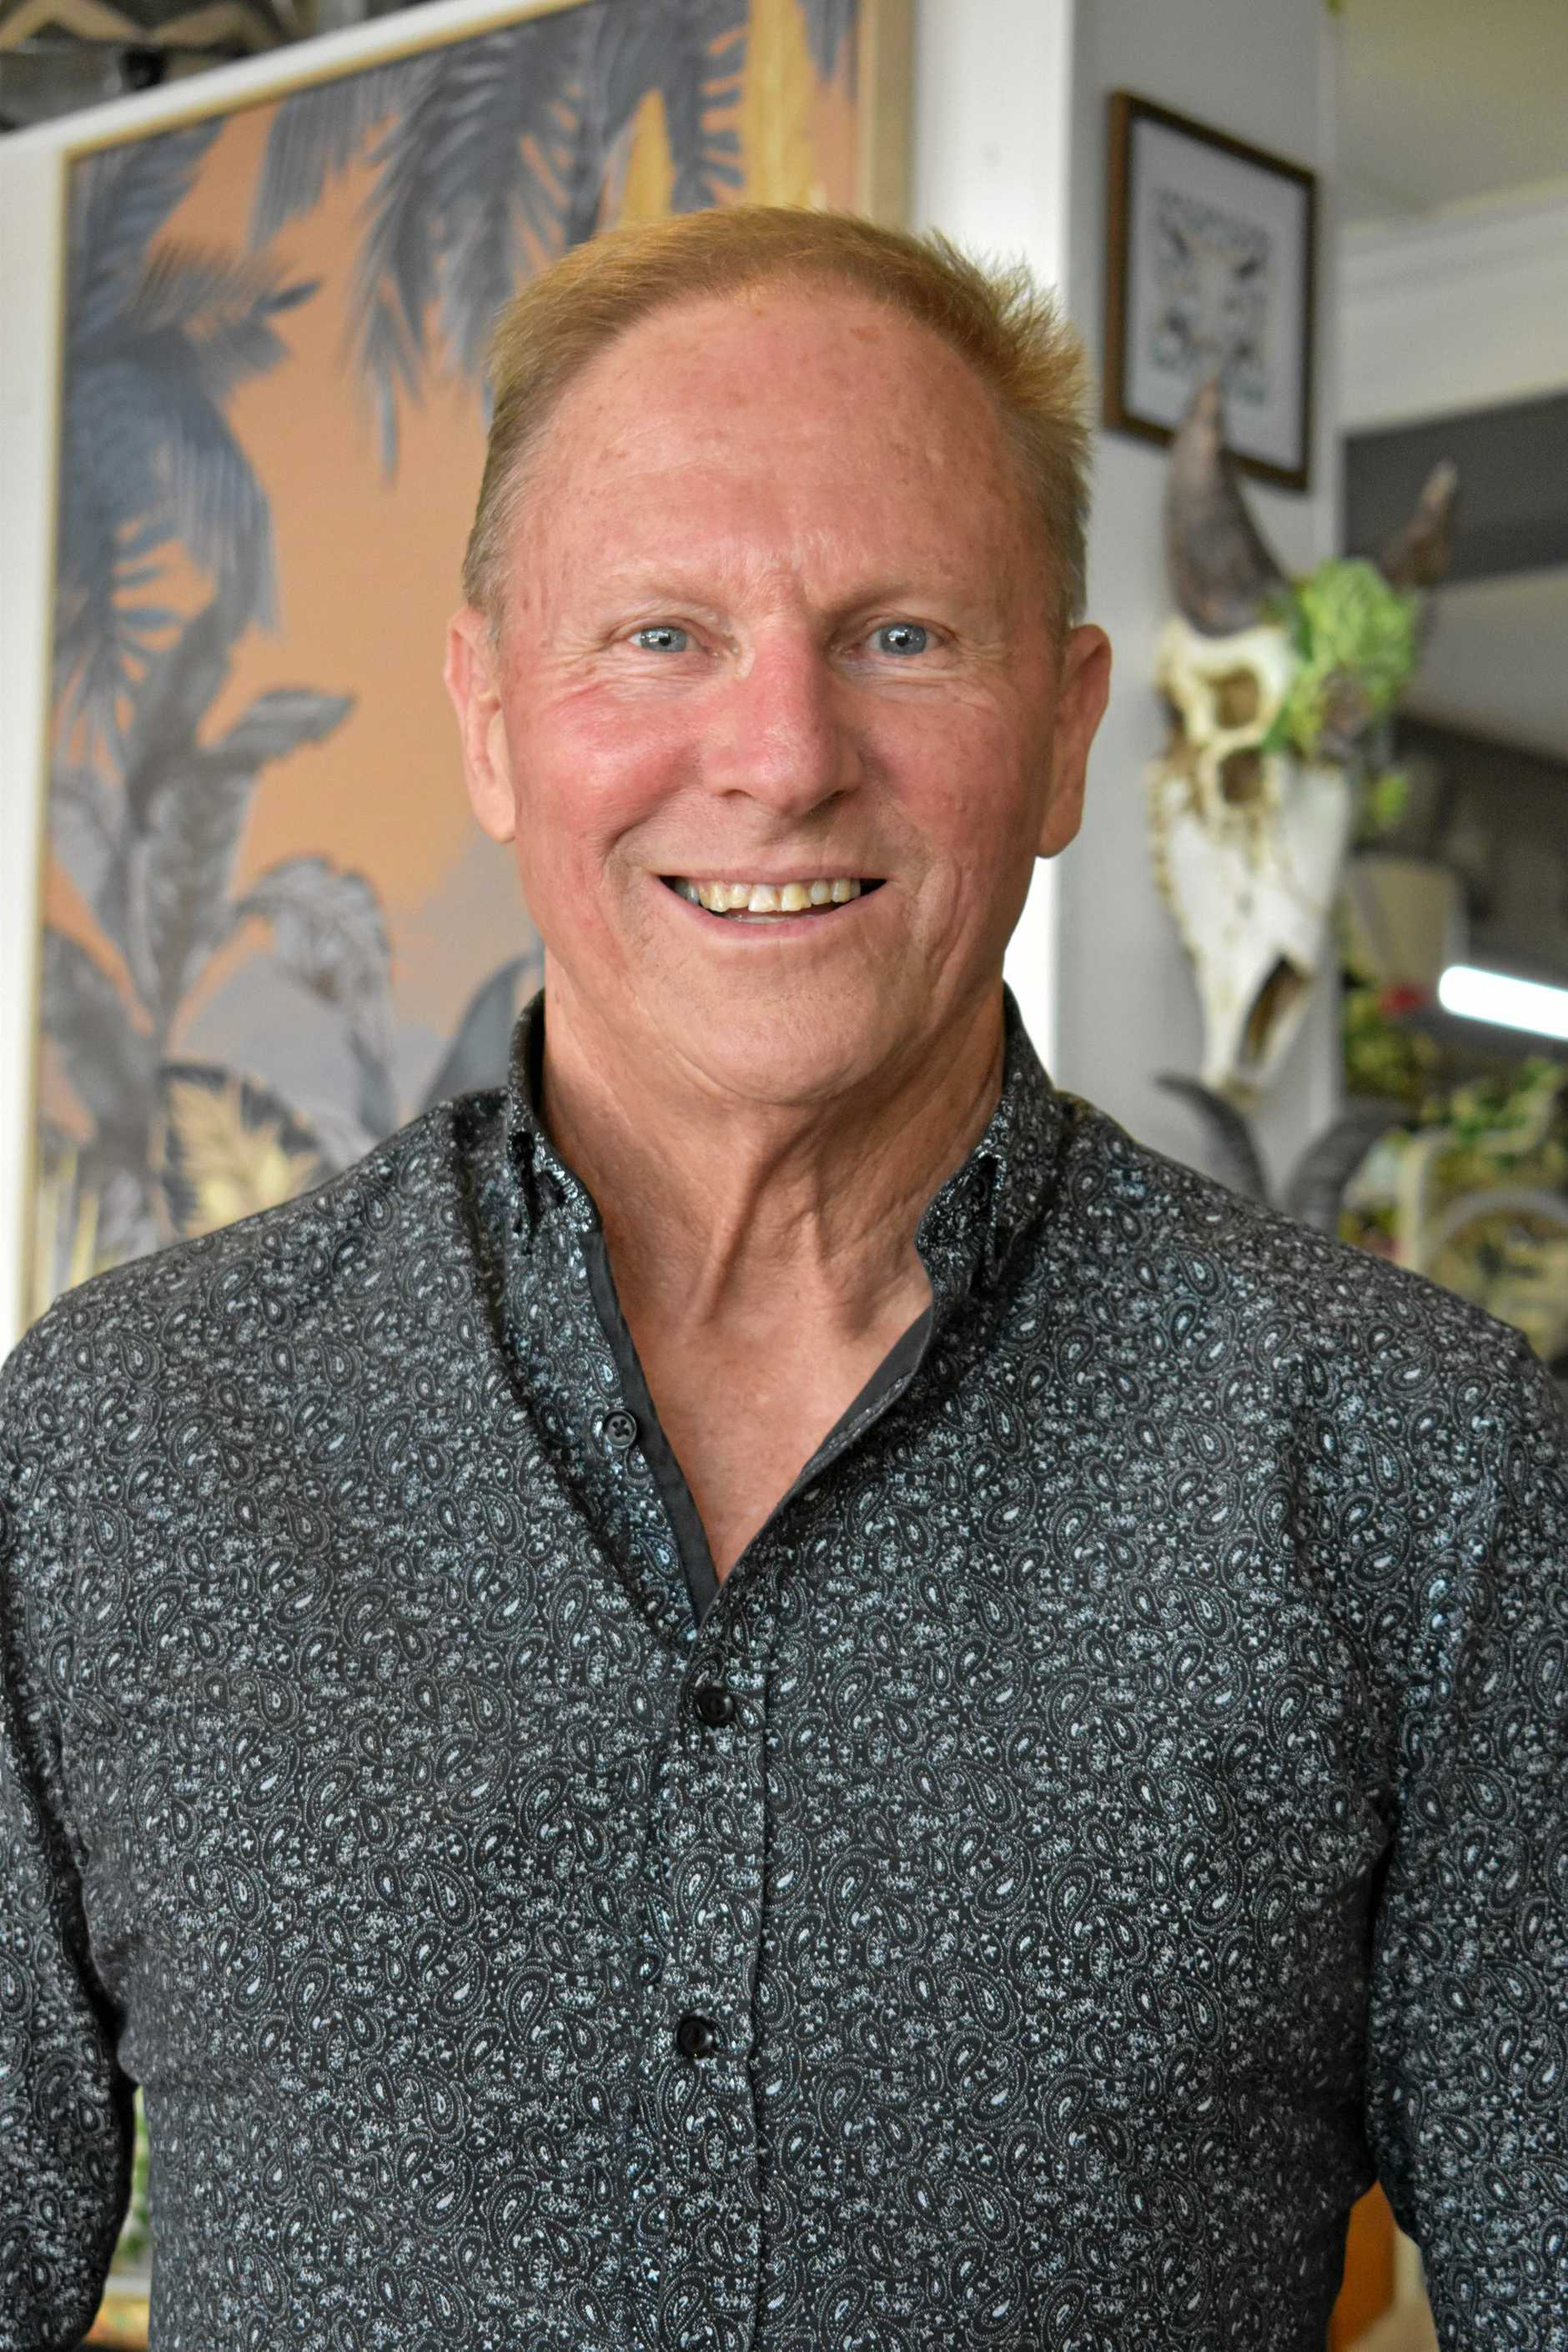 Sitting in the number 7 spot for the 2019 Power 30 is Gympie Chamber of Commerce president Tony Goodman.